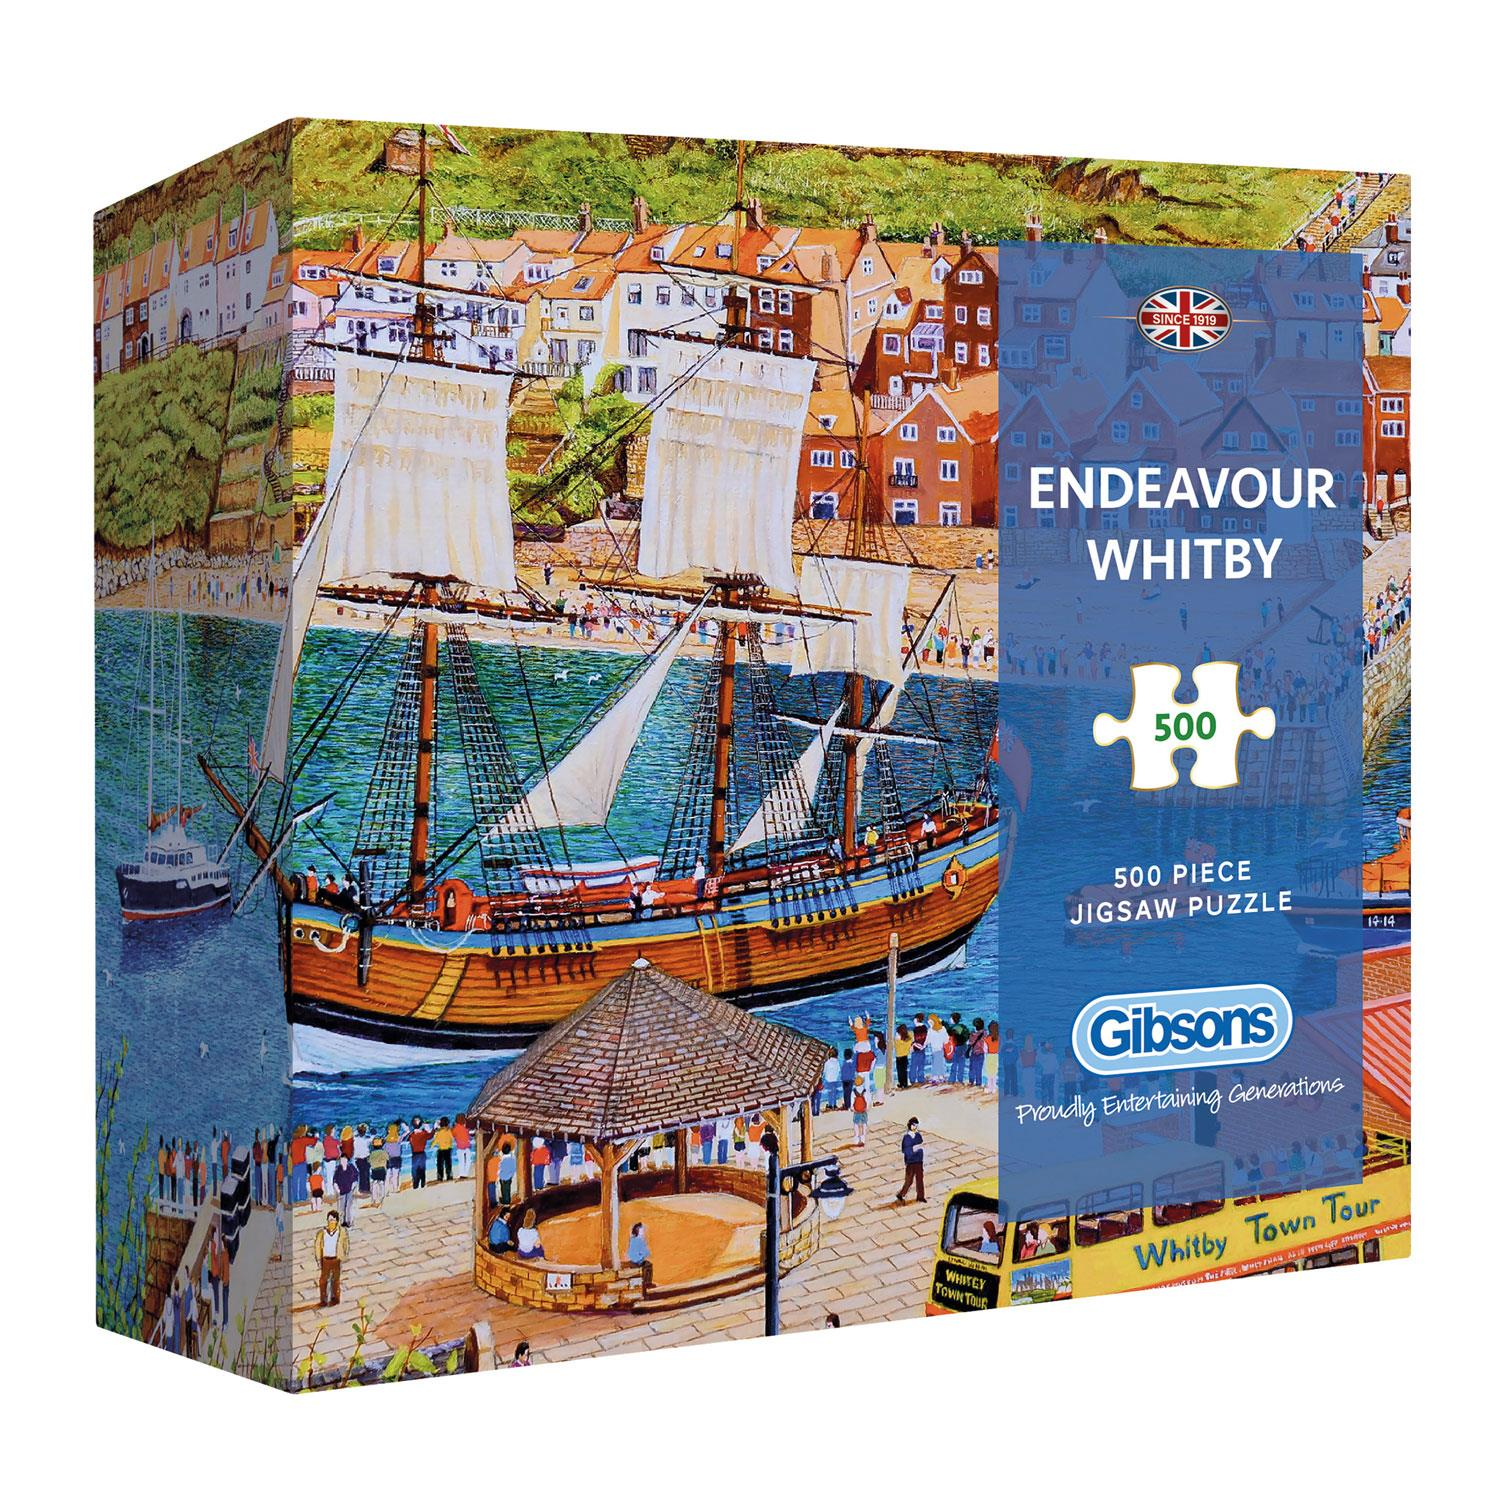 Gibsons Endeavour Whitby Jigsaw Puzzle in Gift Box (500 pieces)